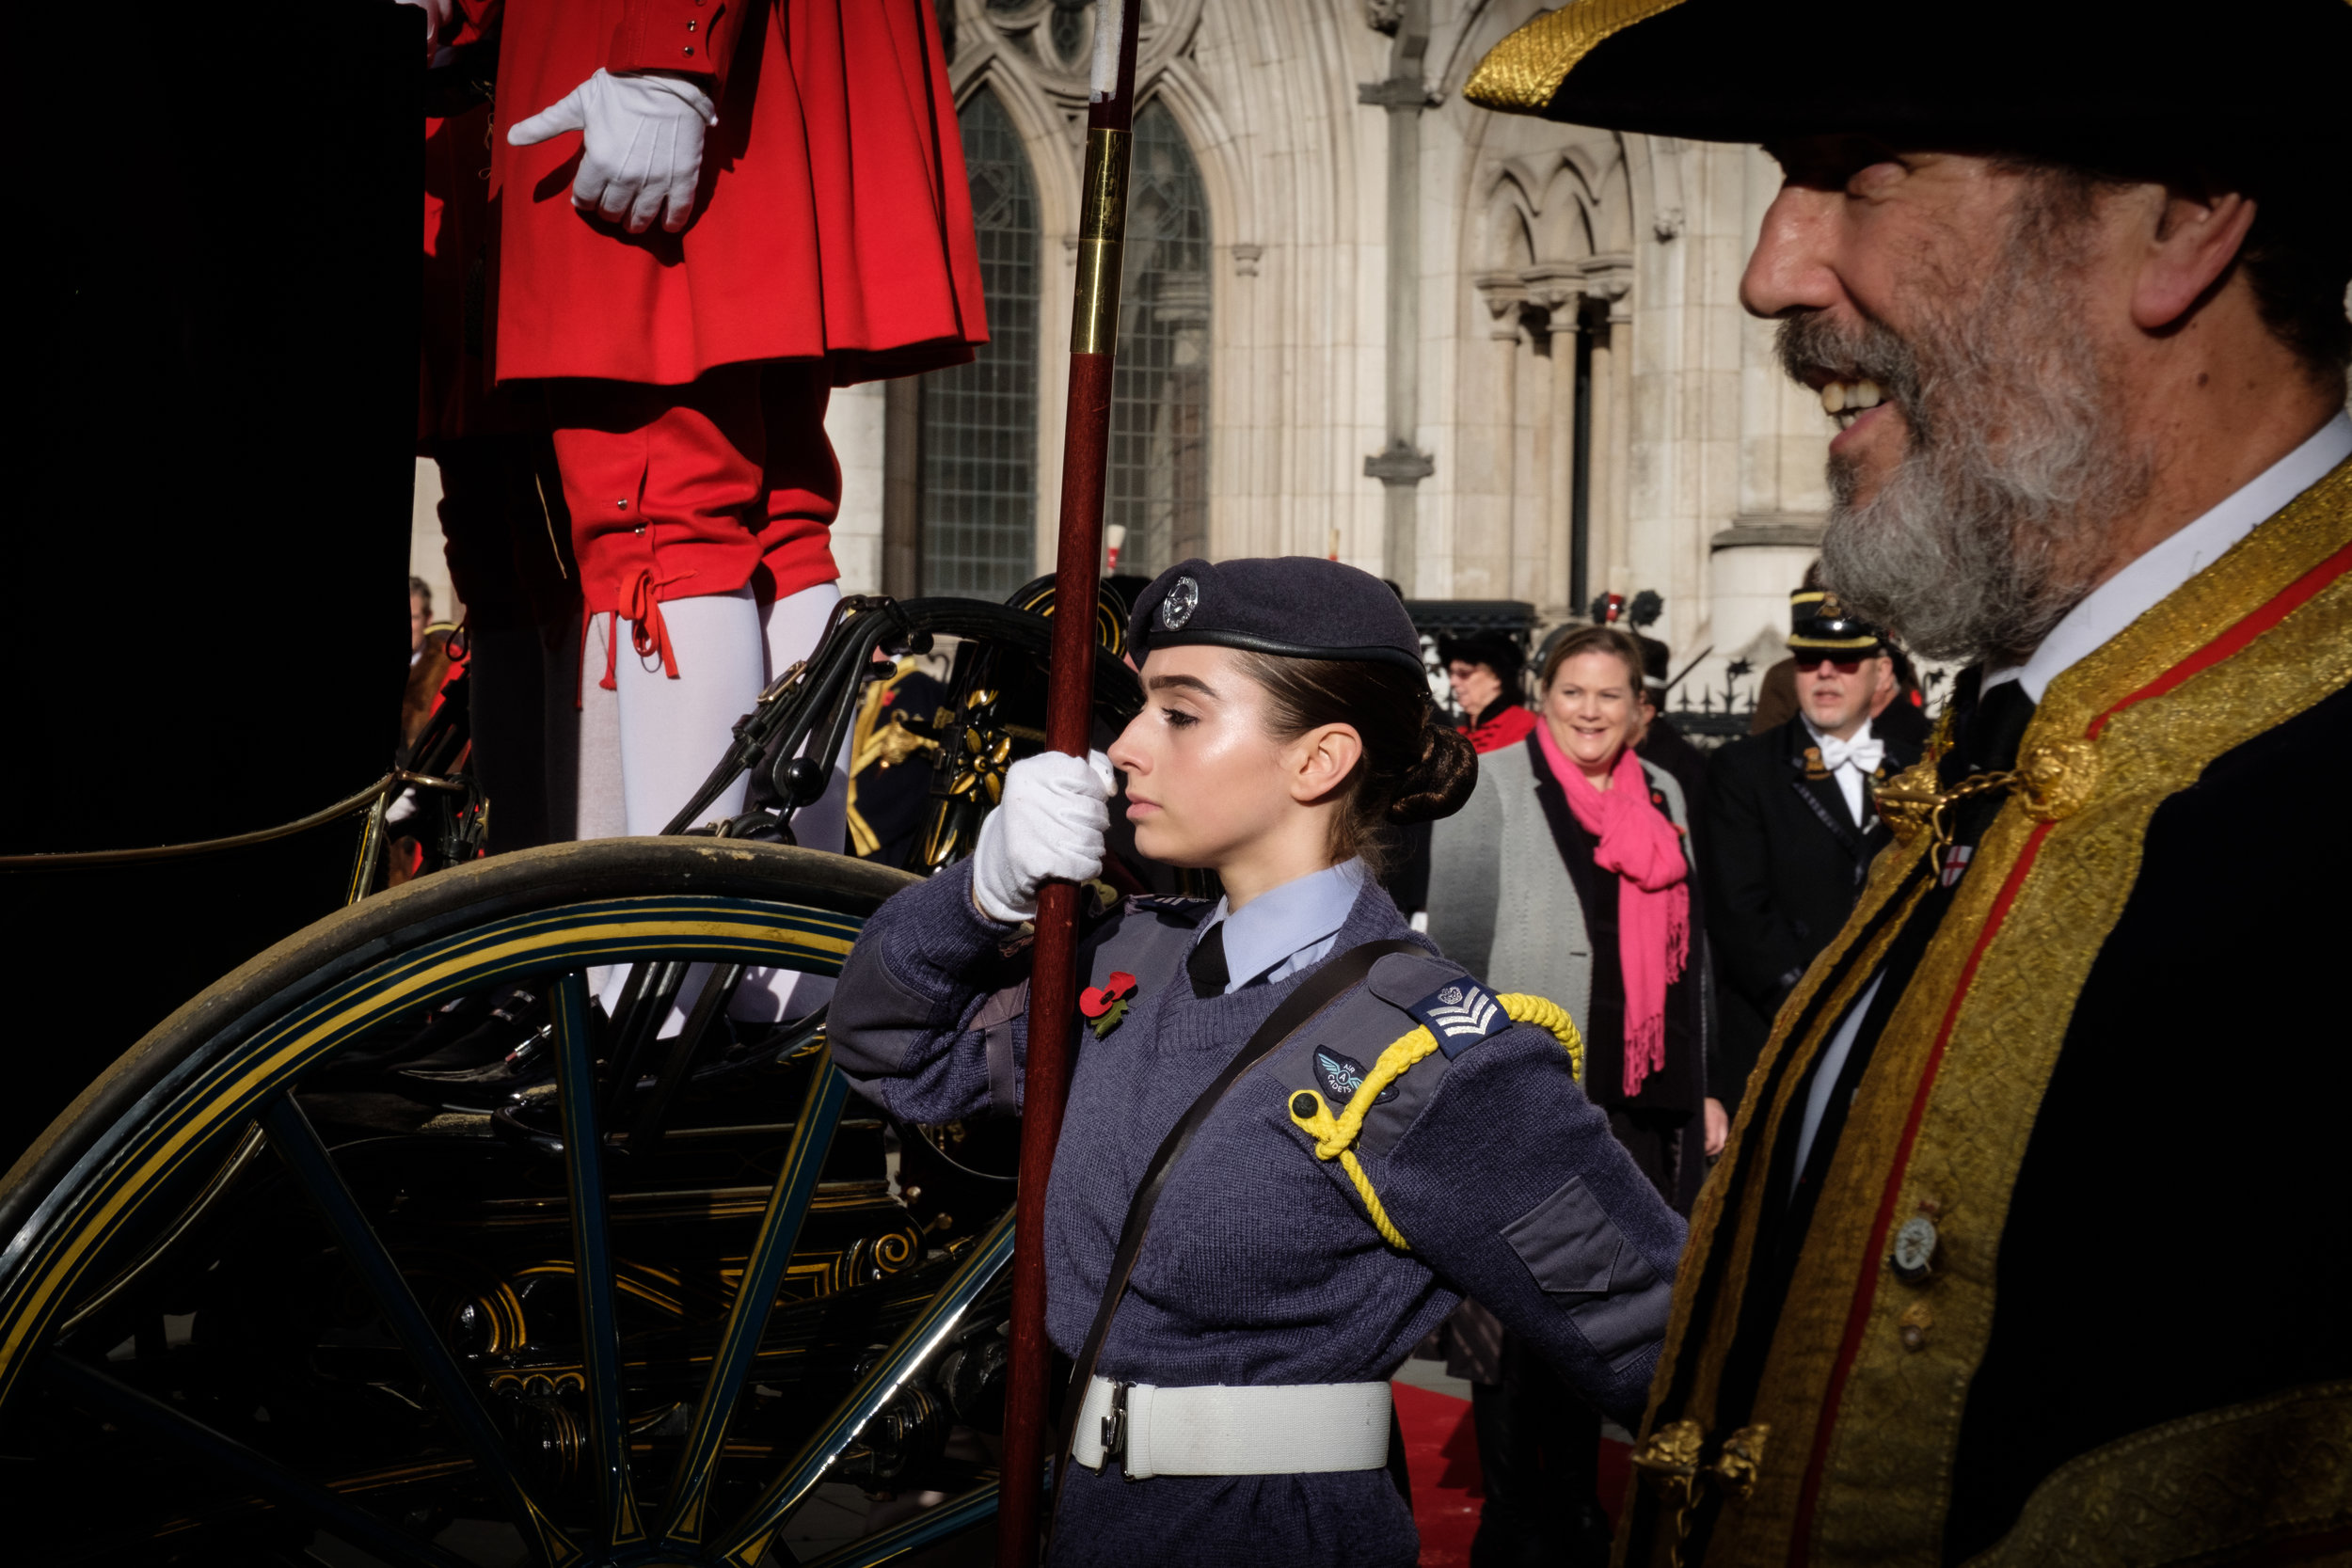 Lord Mayor Show in central London, on the 10th November 2018, with military parades for the 691st Lord Mayor of London Peter Estlin.